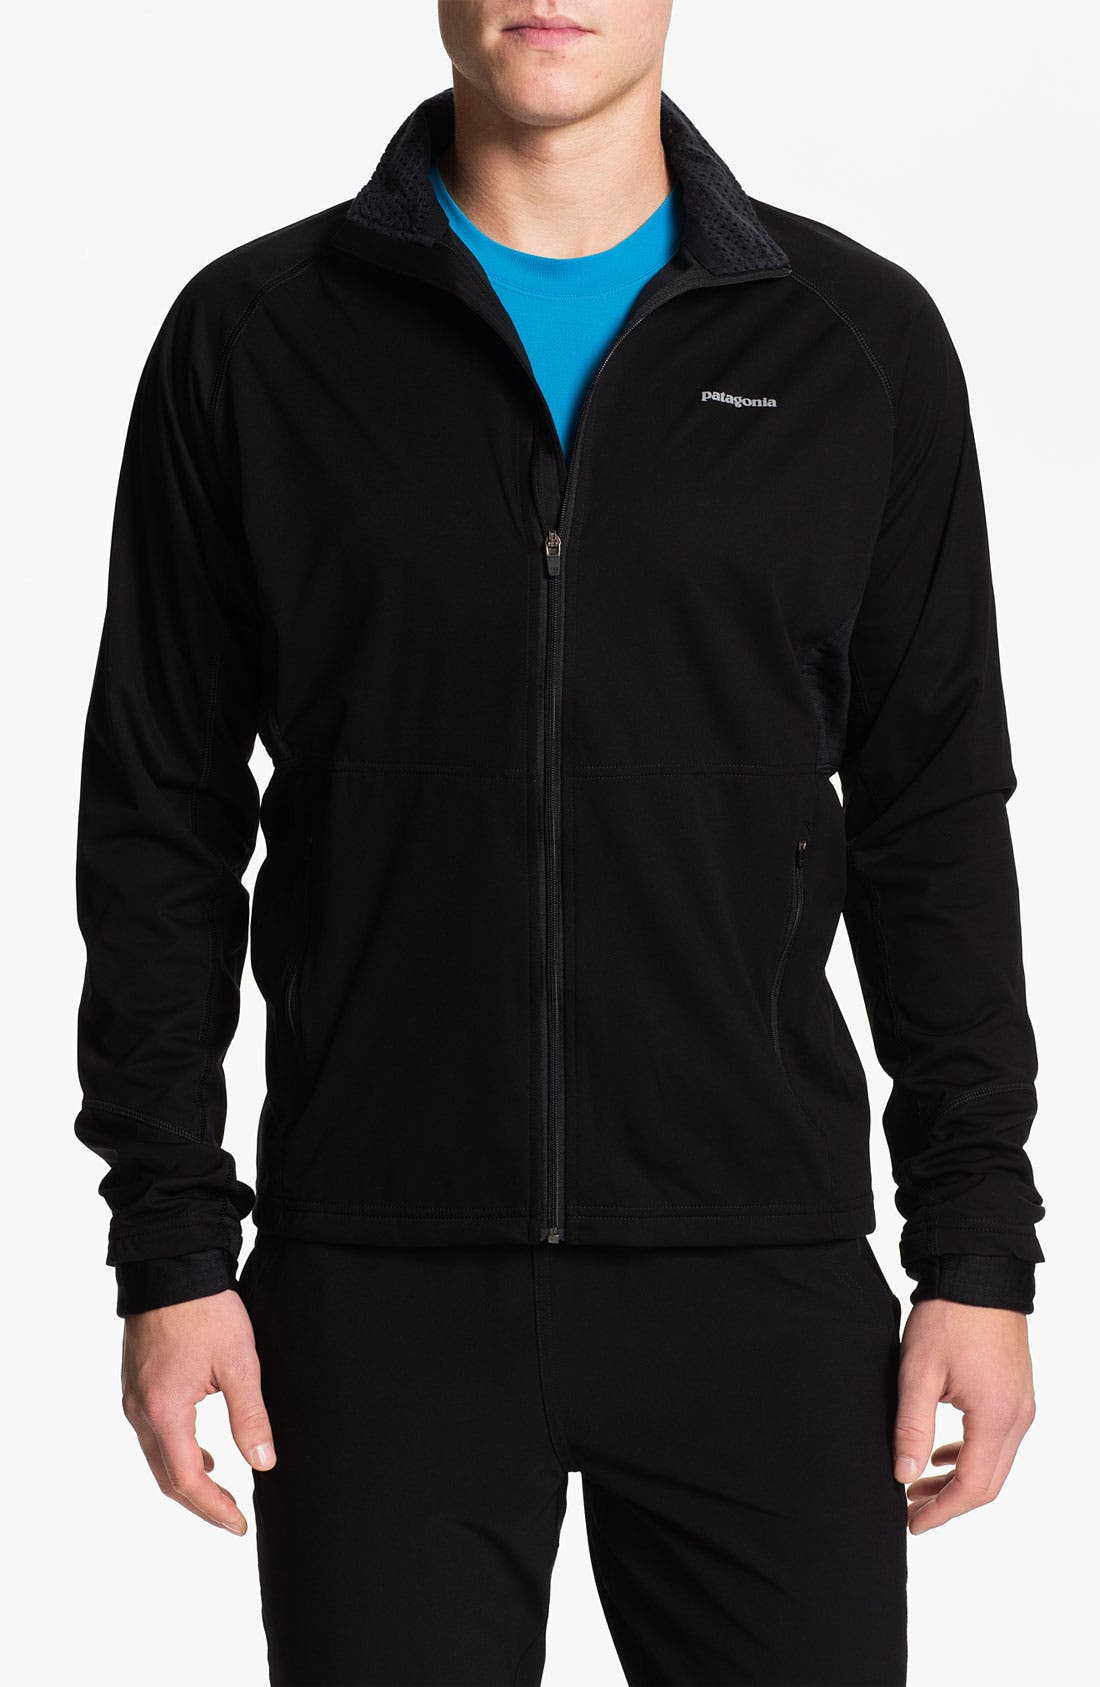 Alternate Image 1 Selected - Patagonia 'Wind Shield' Jacket (Online Only)